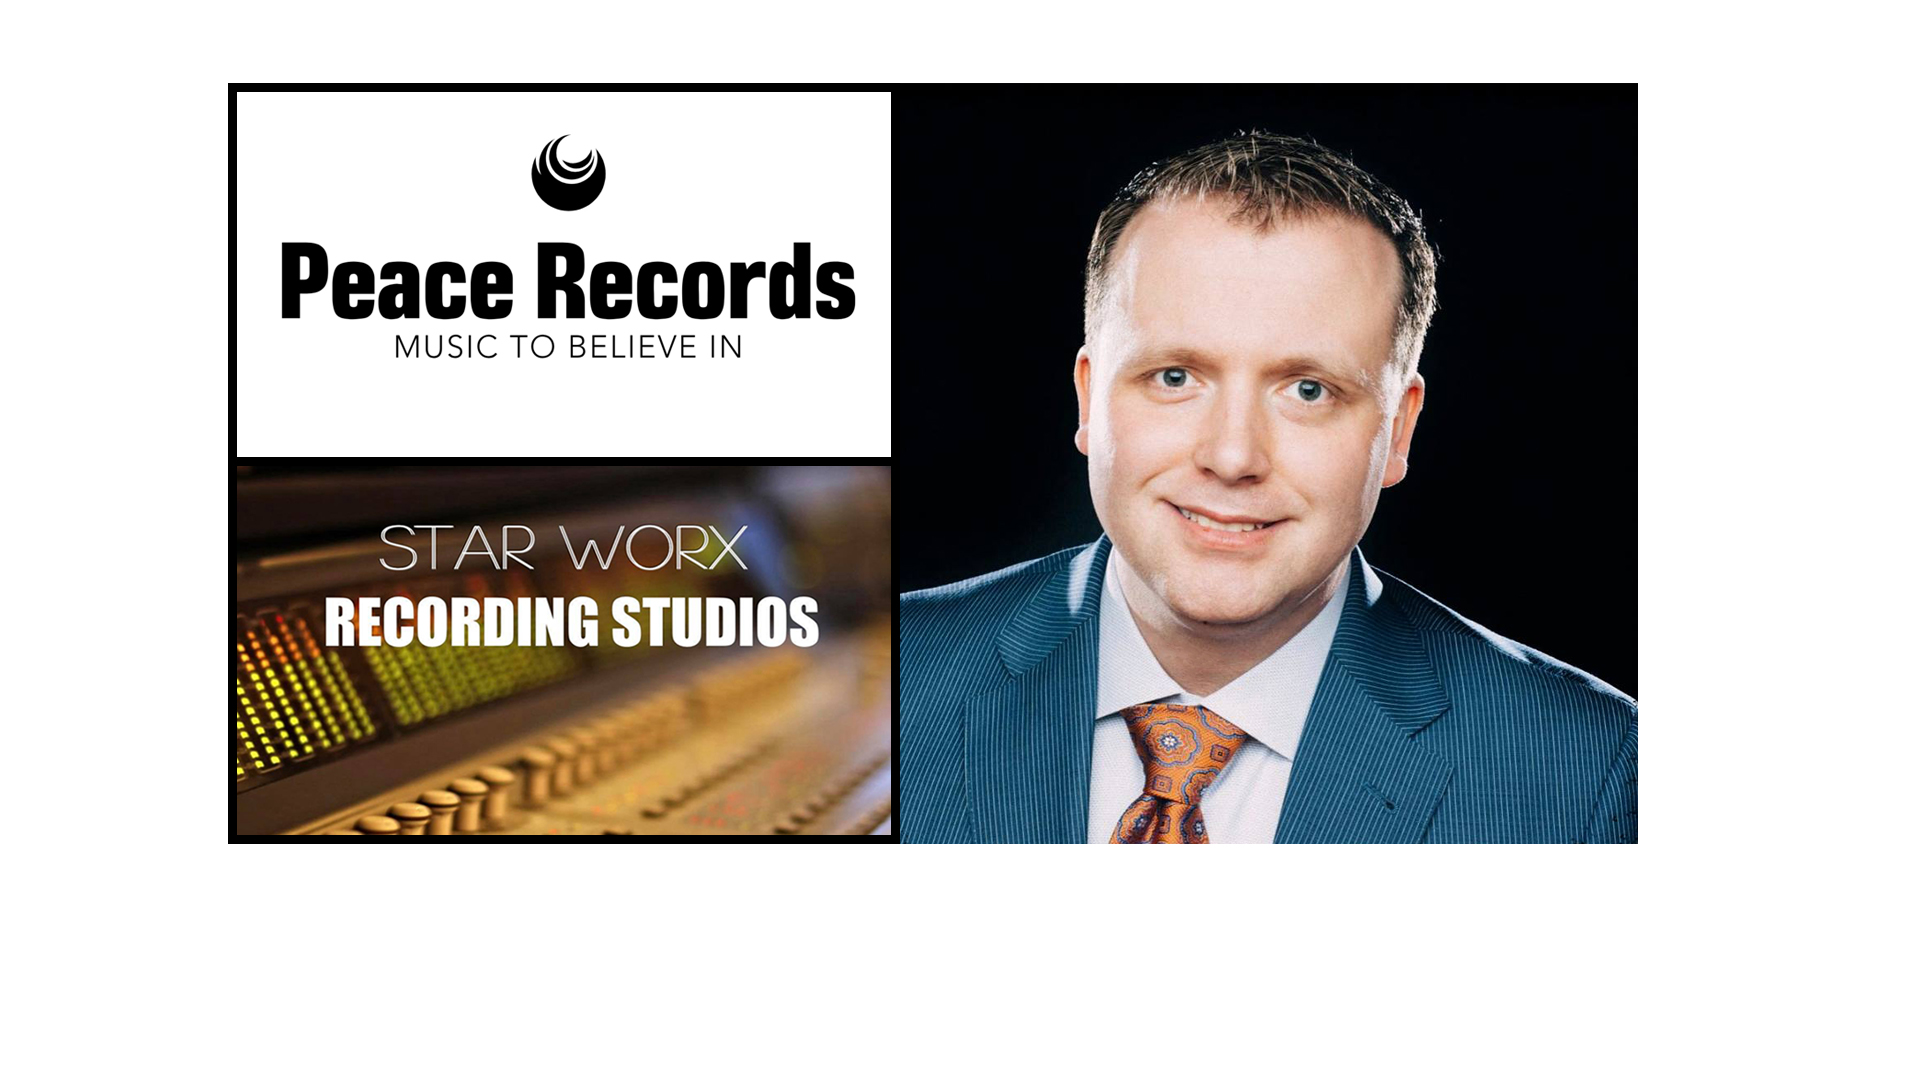 Peace Records opens for business in 2019